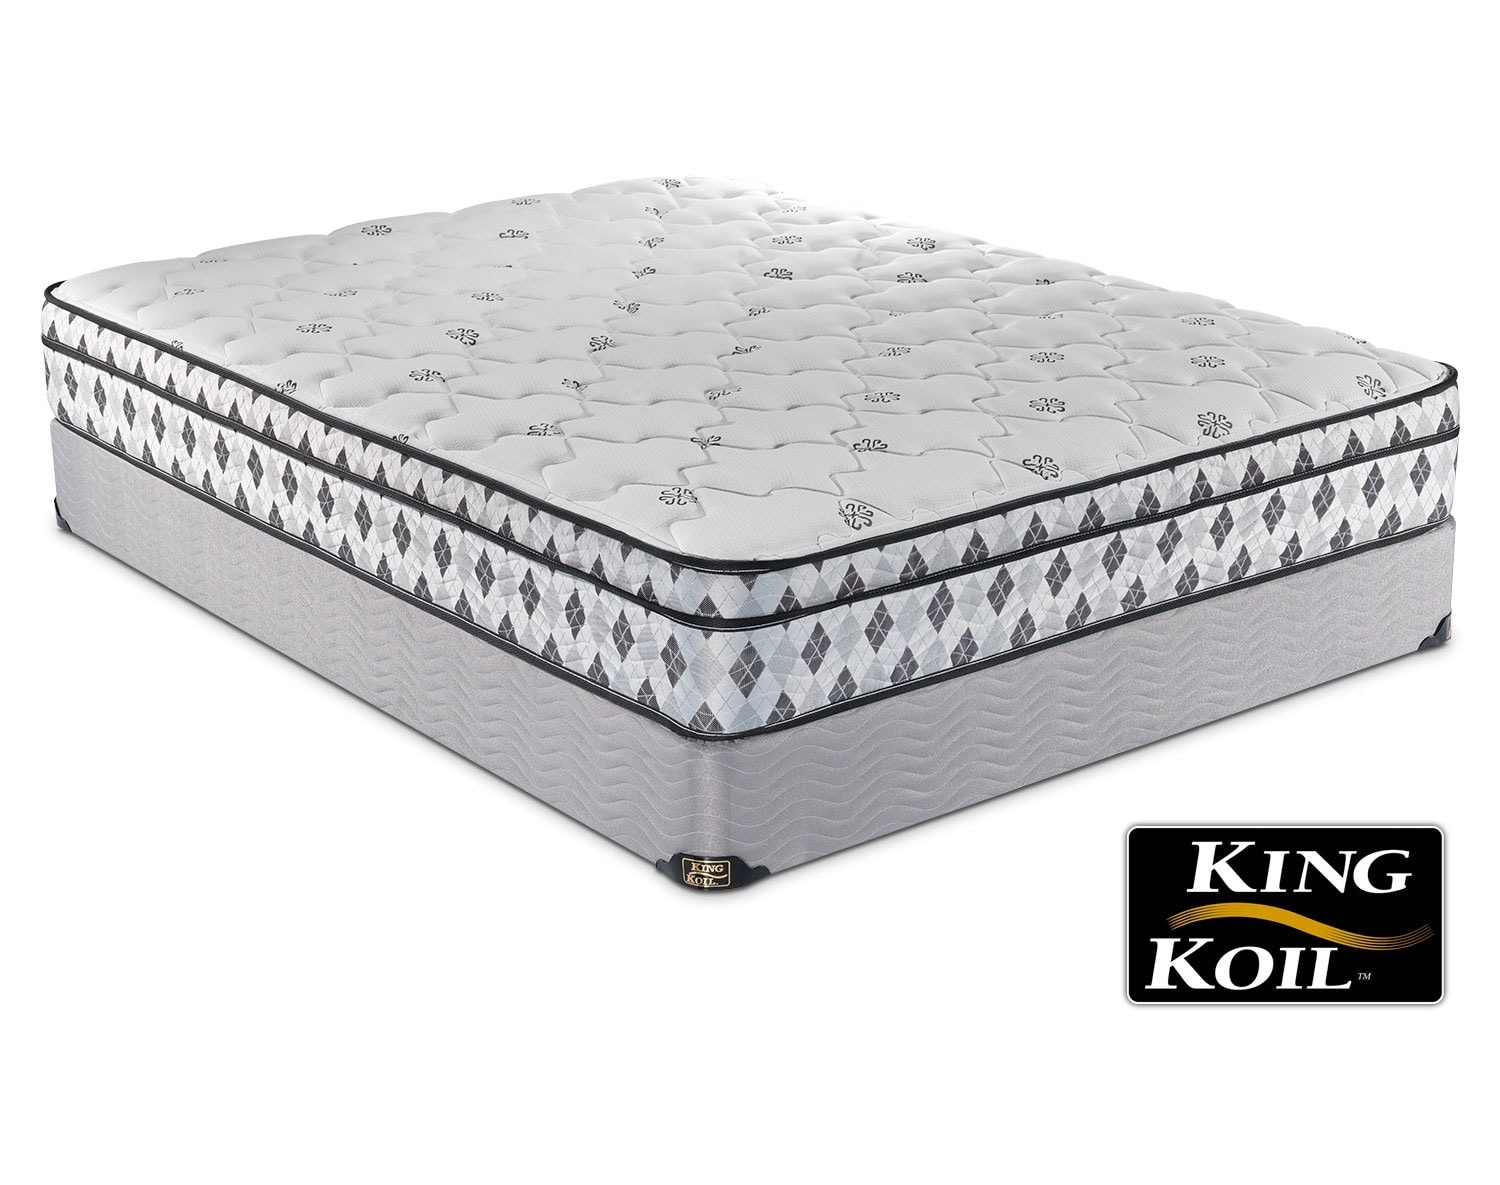 The King Koil Silent Night Mattress Collection